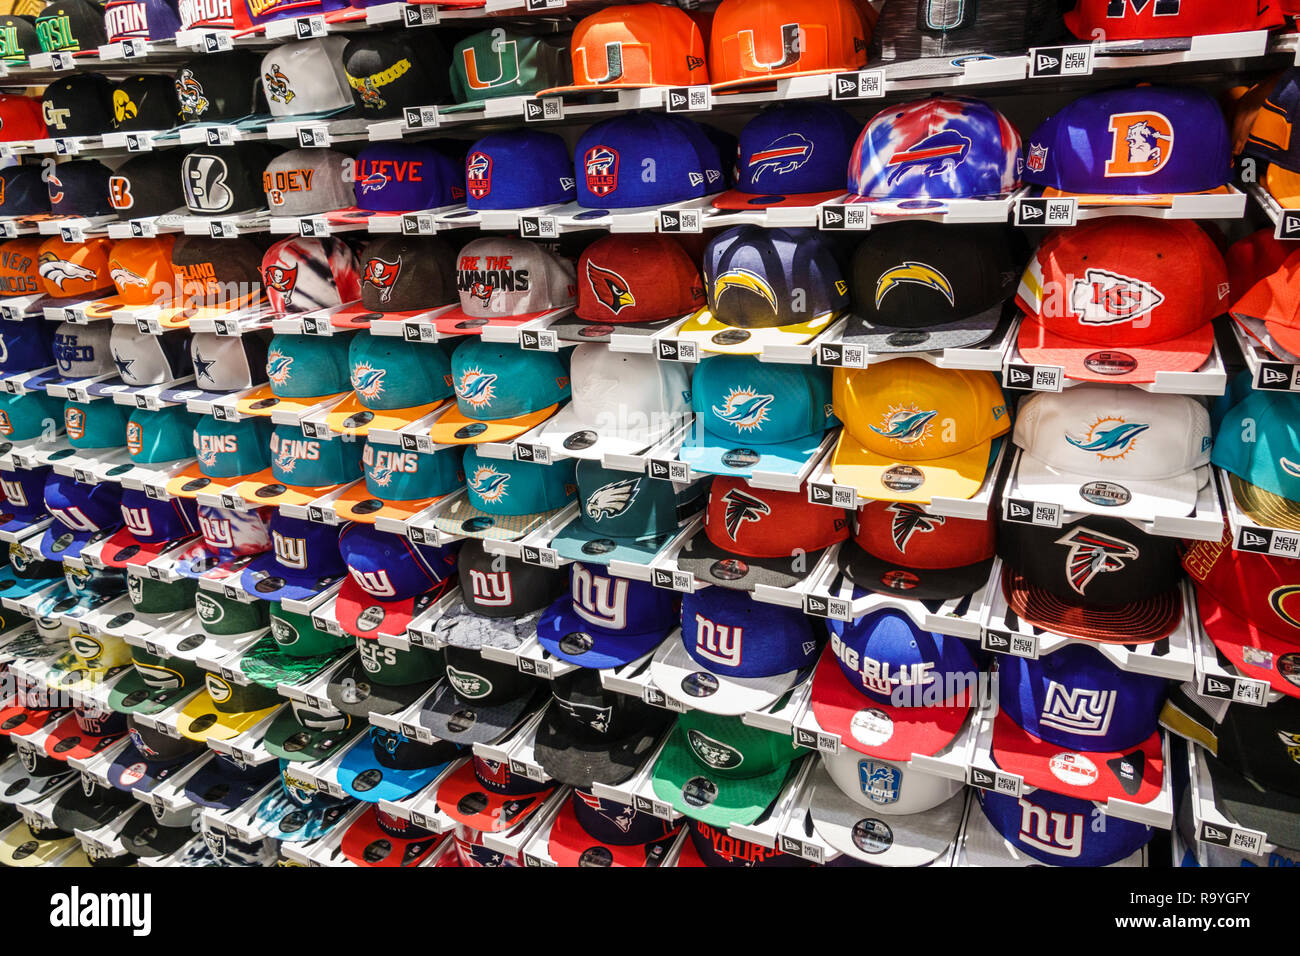 Fort Ft. Lauderdale Florida Sunrise Sawgrass Mills Mall shopping Globall Sports New Era teams team hats caps display sale - Stock Image